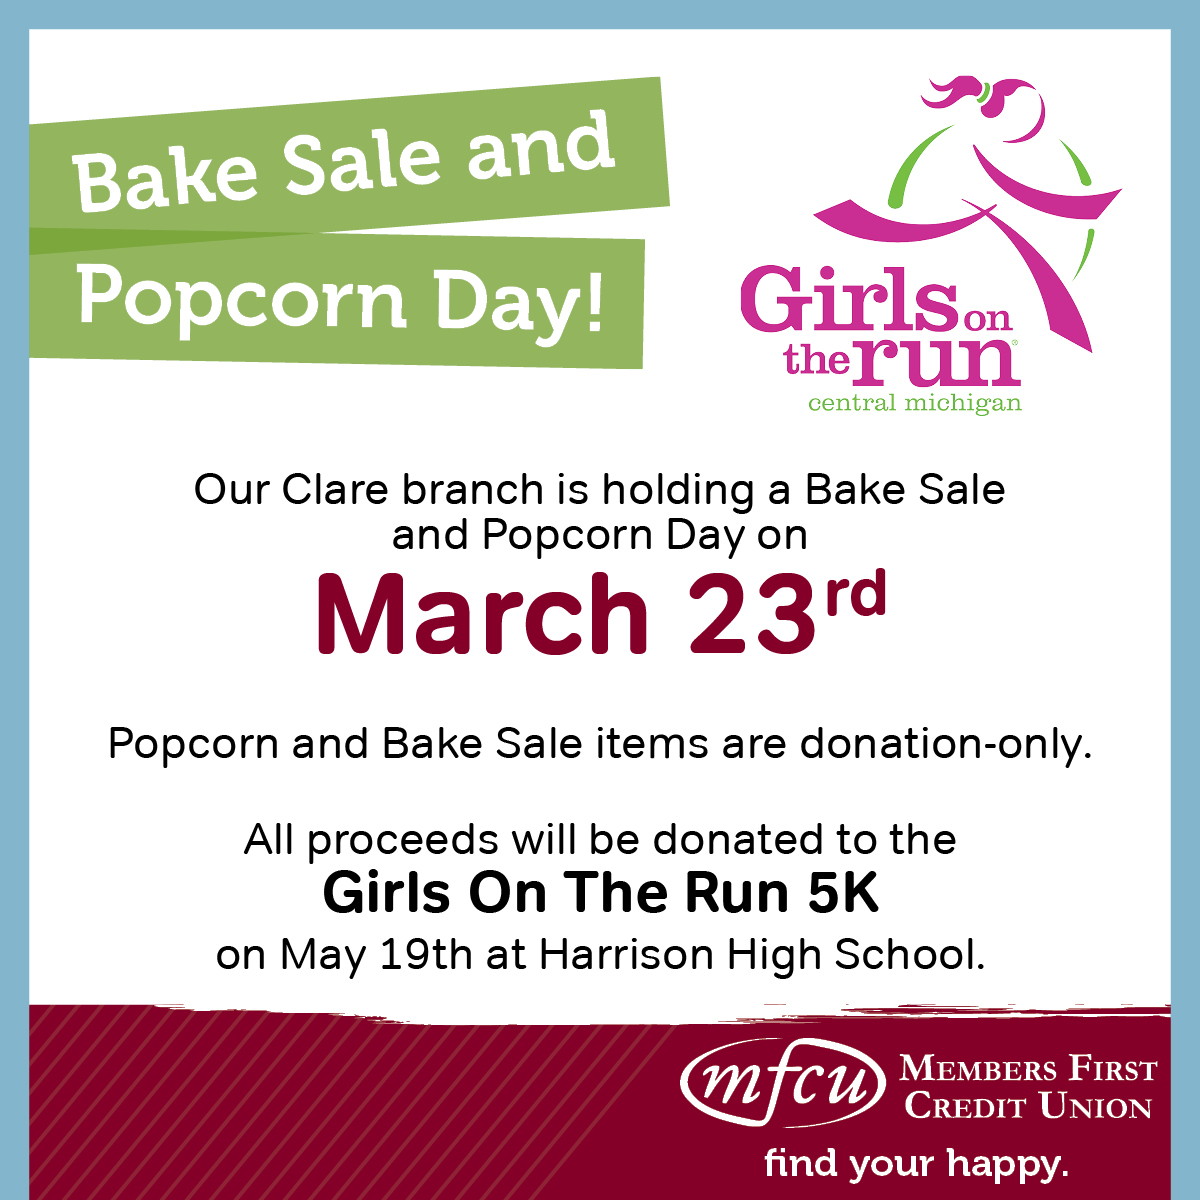 Clare Bake Sale and Popcorn Day